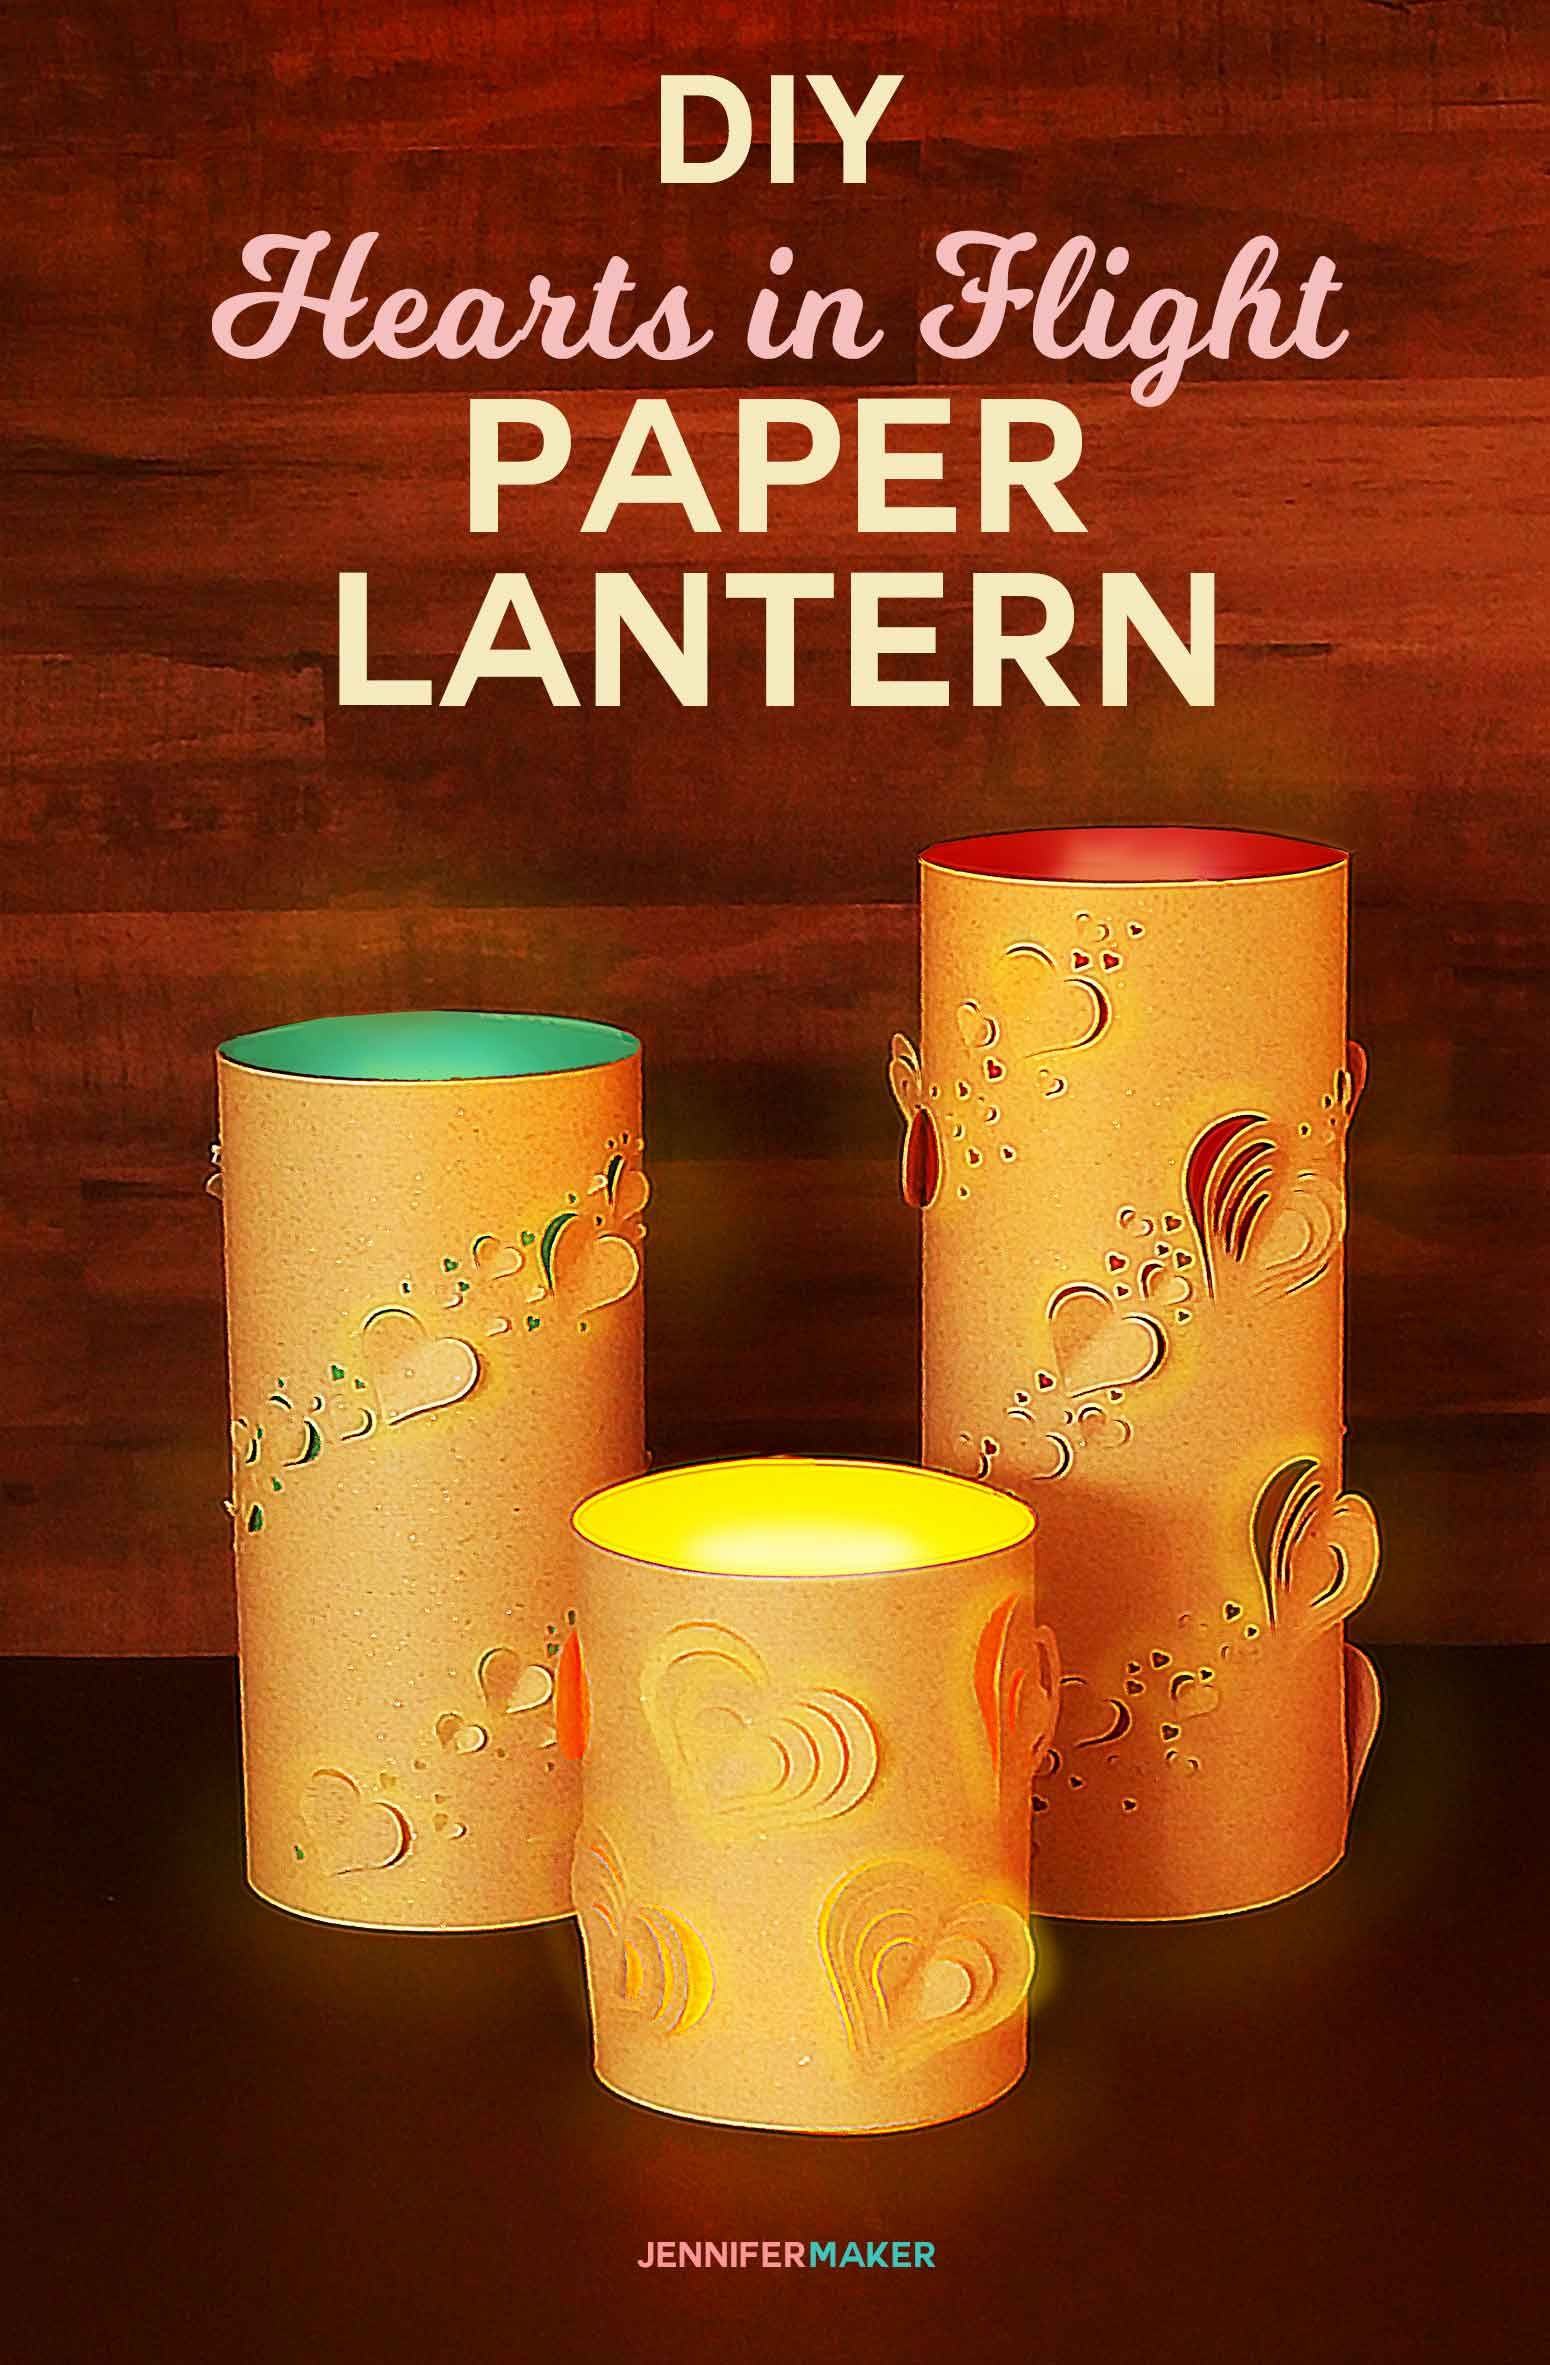 Lit Bambou Fly Diy Paper Lanterns Hearts In Flight Best Of Jennifer Maker